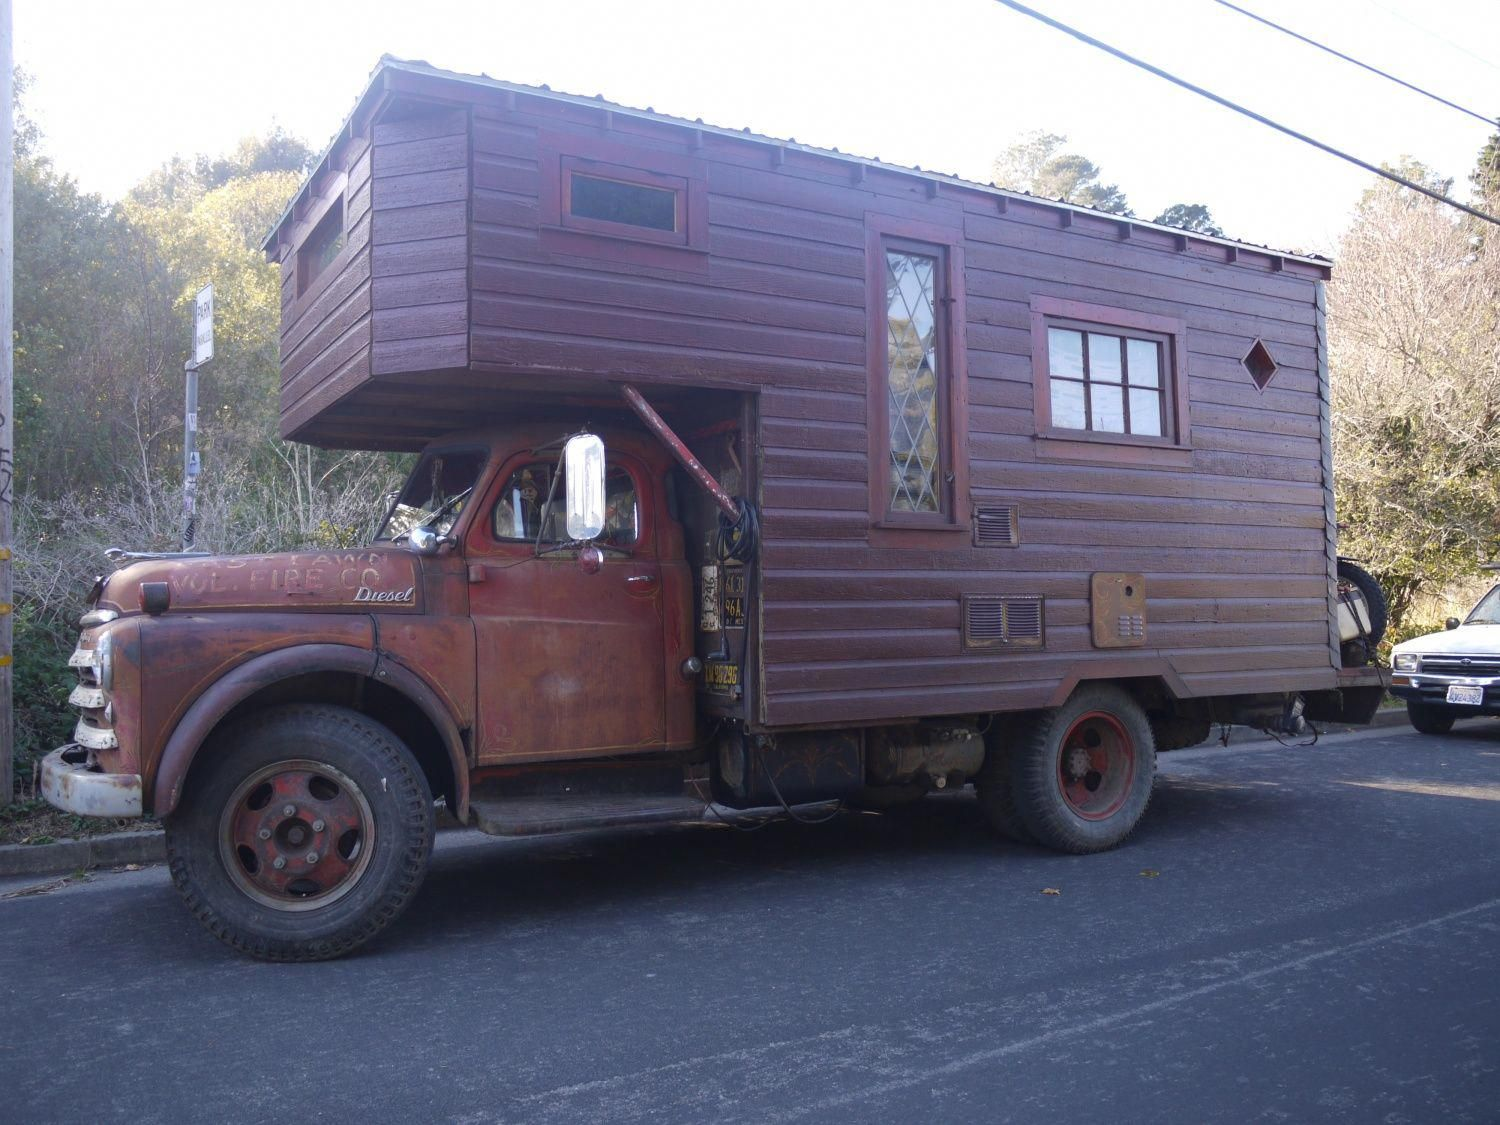 John's house truck was featured earlier this year when